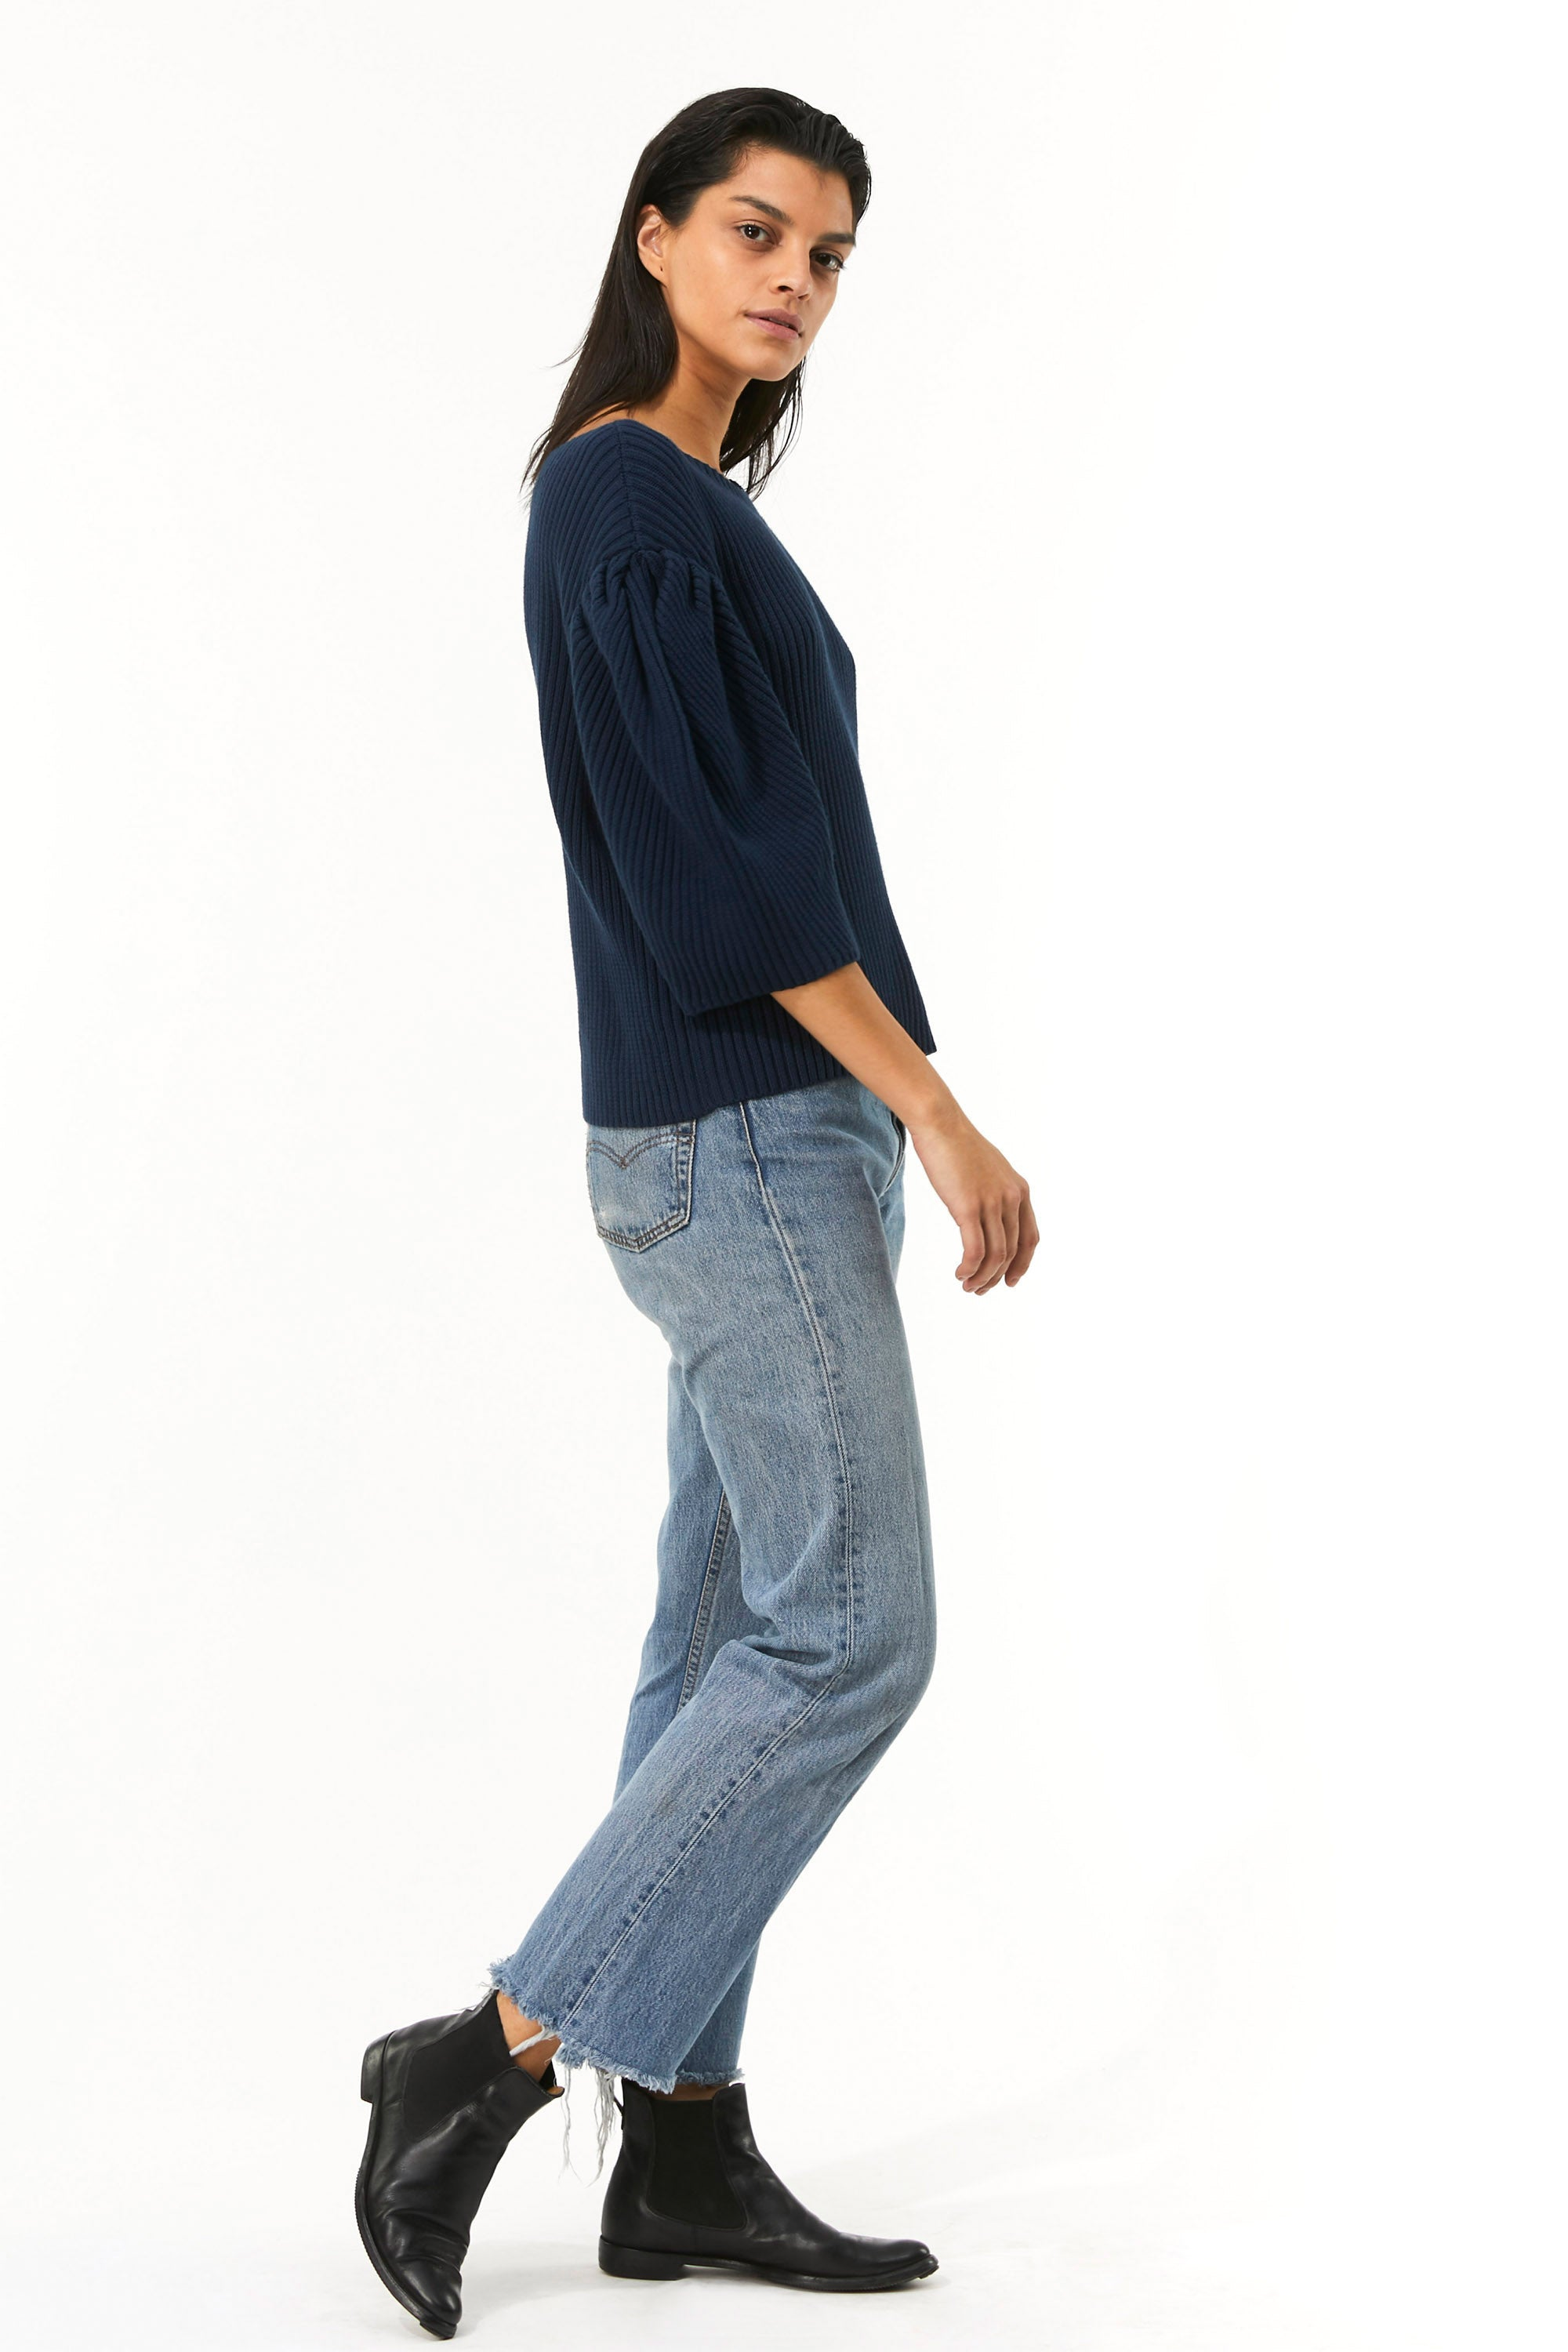 Mara Hoffman Indigo Inga Sweater in organic cotton (side)